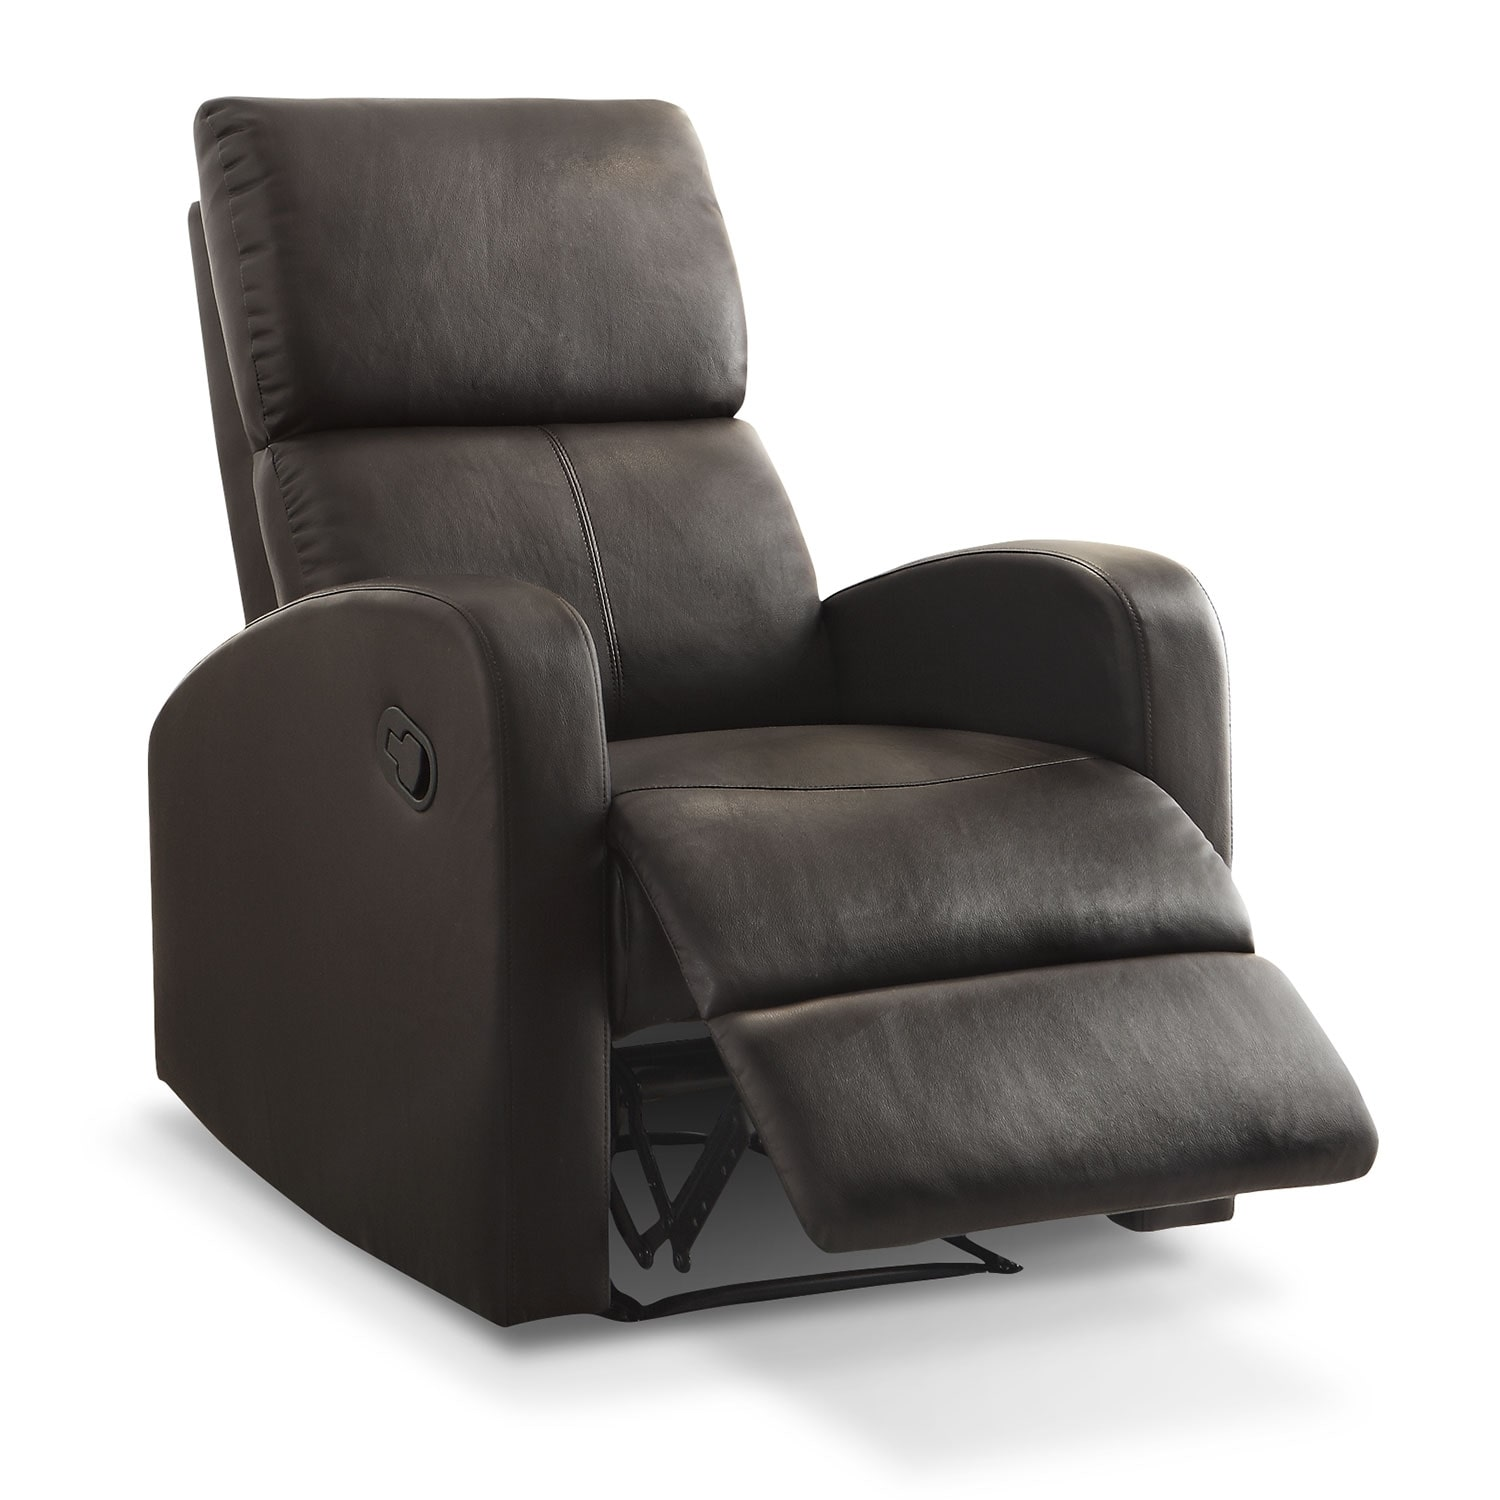 Benning Recliner - Dark Brown